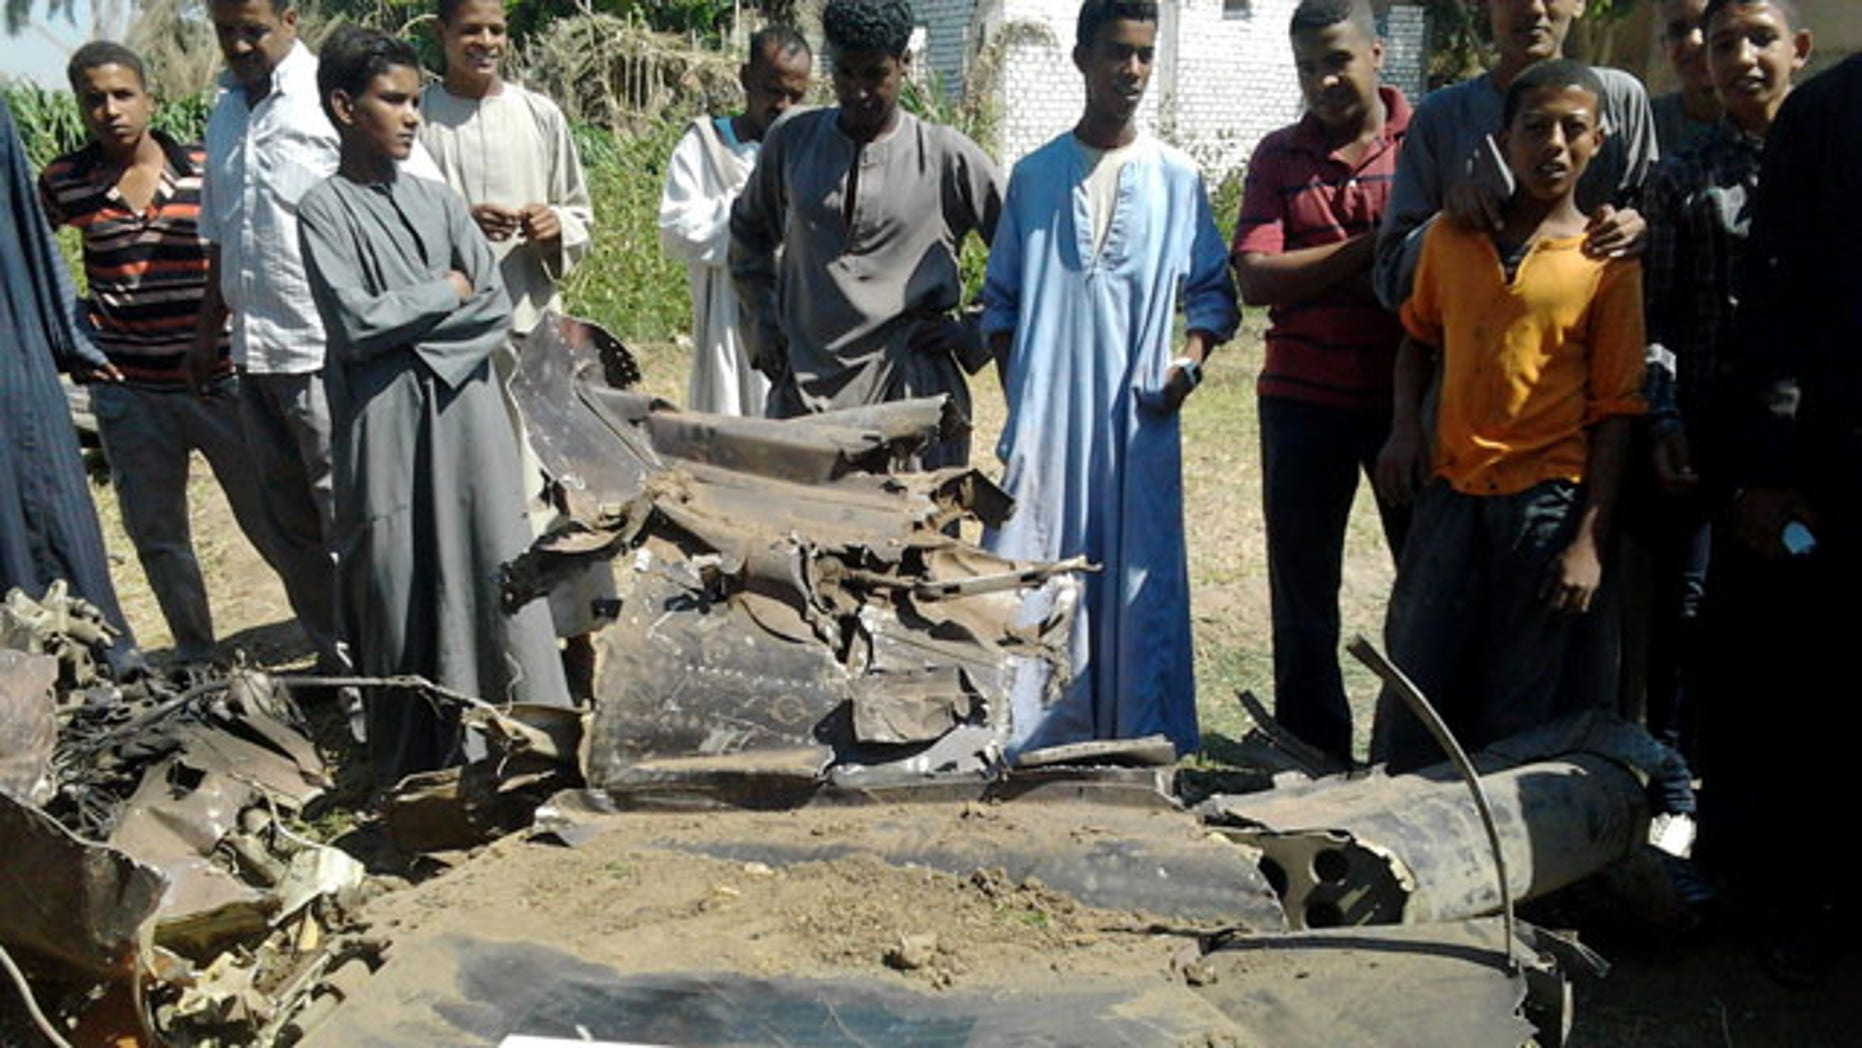 October 13, 2013: Egyptians gather around the remains of a Soviet-made MiG-21 fighter jet belonging to the Egyptian air force that crashed Sunday, while on a training mission near the southern ancient city of Luxor, which officials said killed a villager on the ground and injured several. (AP Photo)